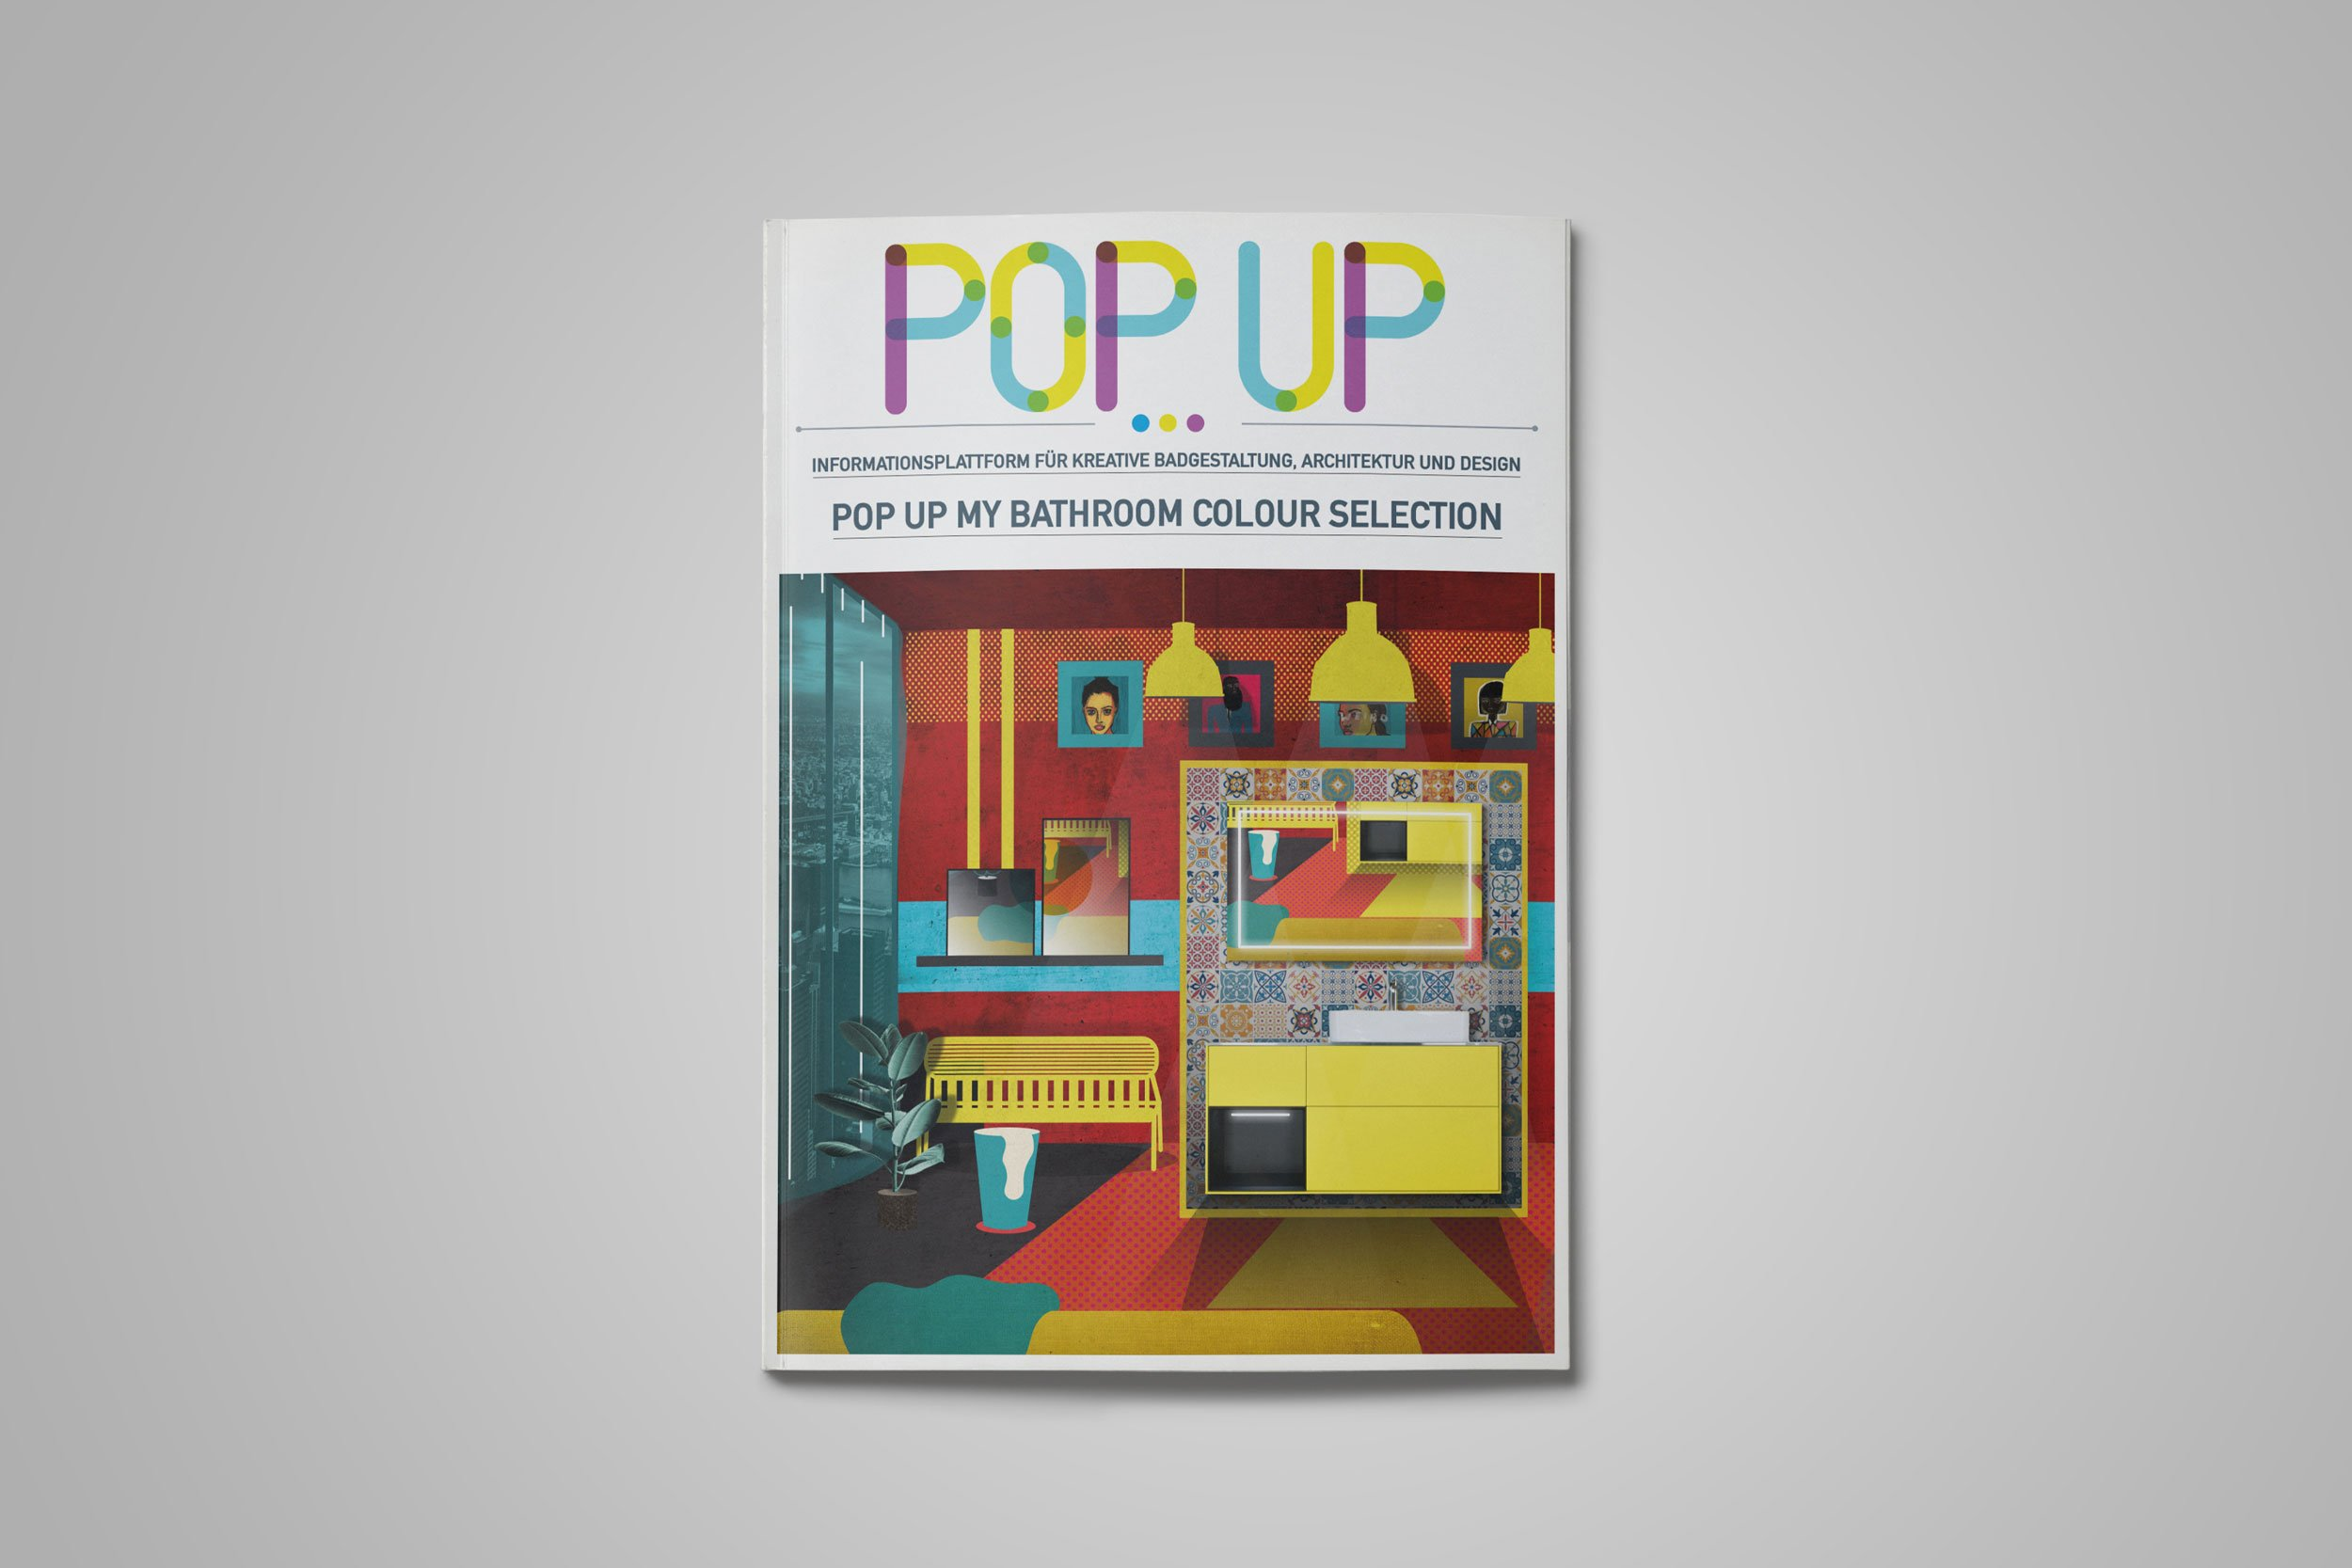 https://farconsulting.de/wp-content/uploads/2020/03/08_Pop-up-my-Bathroom-Trendbuch.jpg